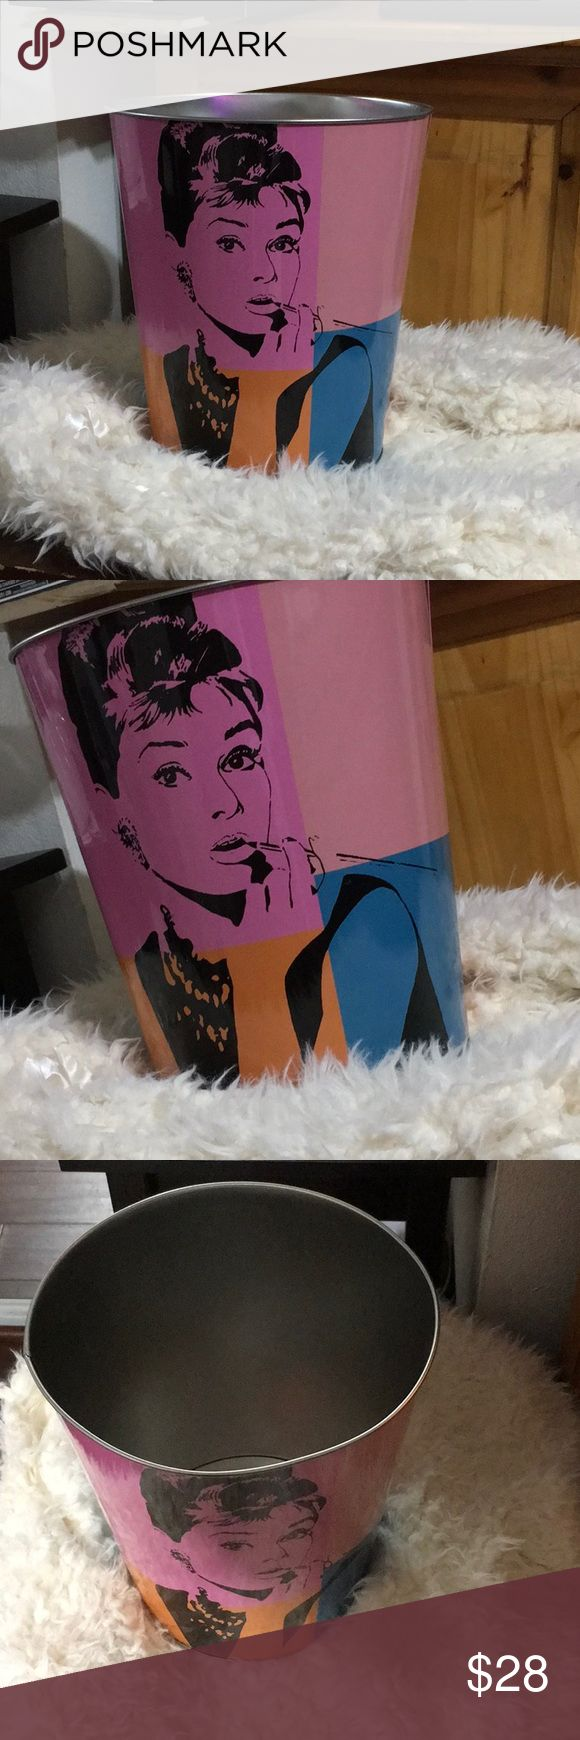 💋New Aubrey Hepburn Can✨ 💋New Aubrey Hepburn Can, can be use as a Trash Can or Can or to store anything . Almost 11 inches in height!  Includes Free Gift 🎁 ♡ with a personal written thank you note♡  Ready to ship!  Fast Shipping!   Bundle items and save 5% off 2+🔥 Accessories